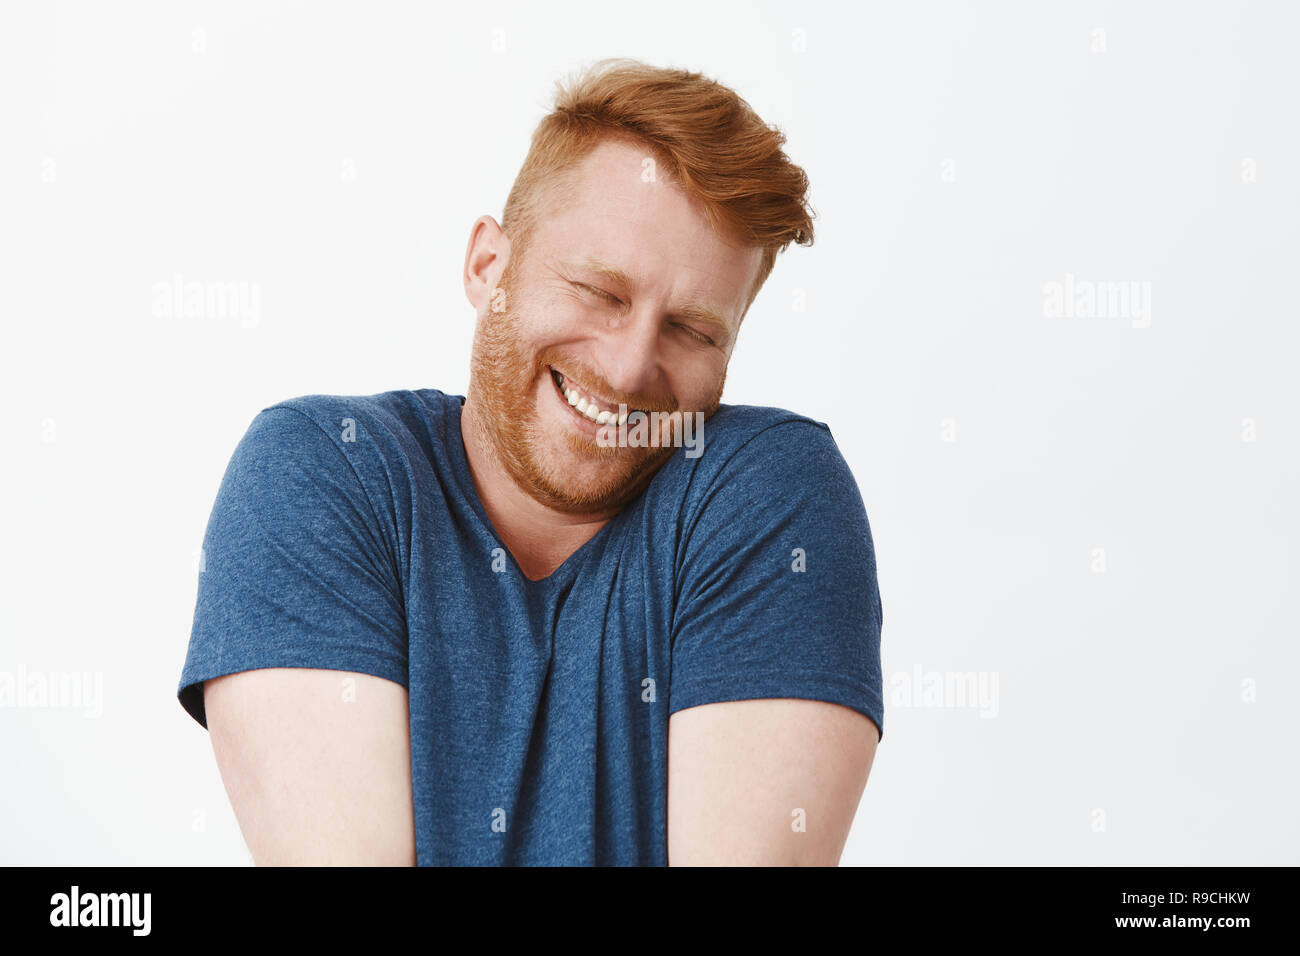 Oh stop it you. Portrait of cute pleased and satisfied happy and funny redhead man in blue t-shirt, shrugging and leaning face on shoulder while smiling broadly, blushing from joy and happiness - Stock Image